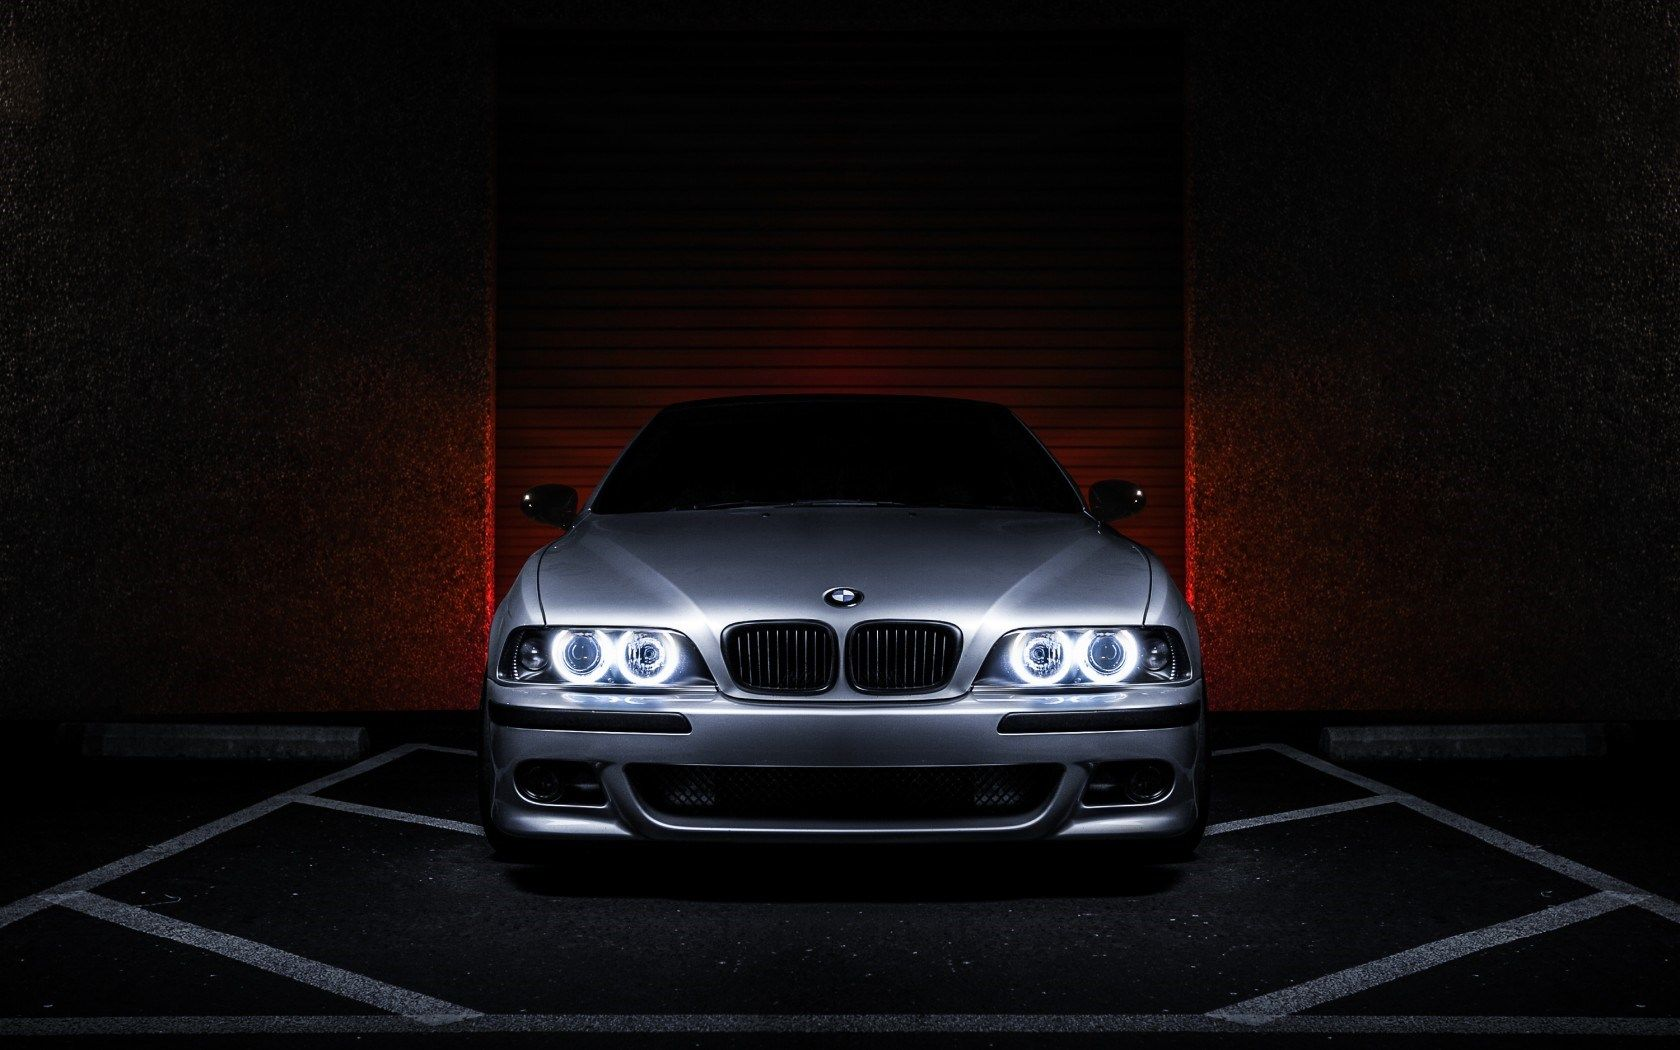 Bmw 5 series e39 check out these bimmers http